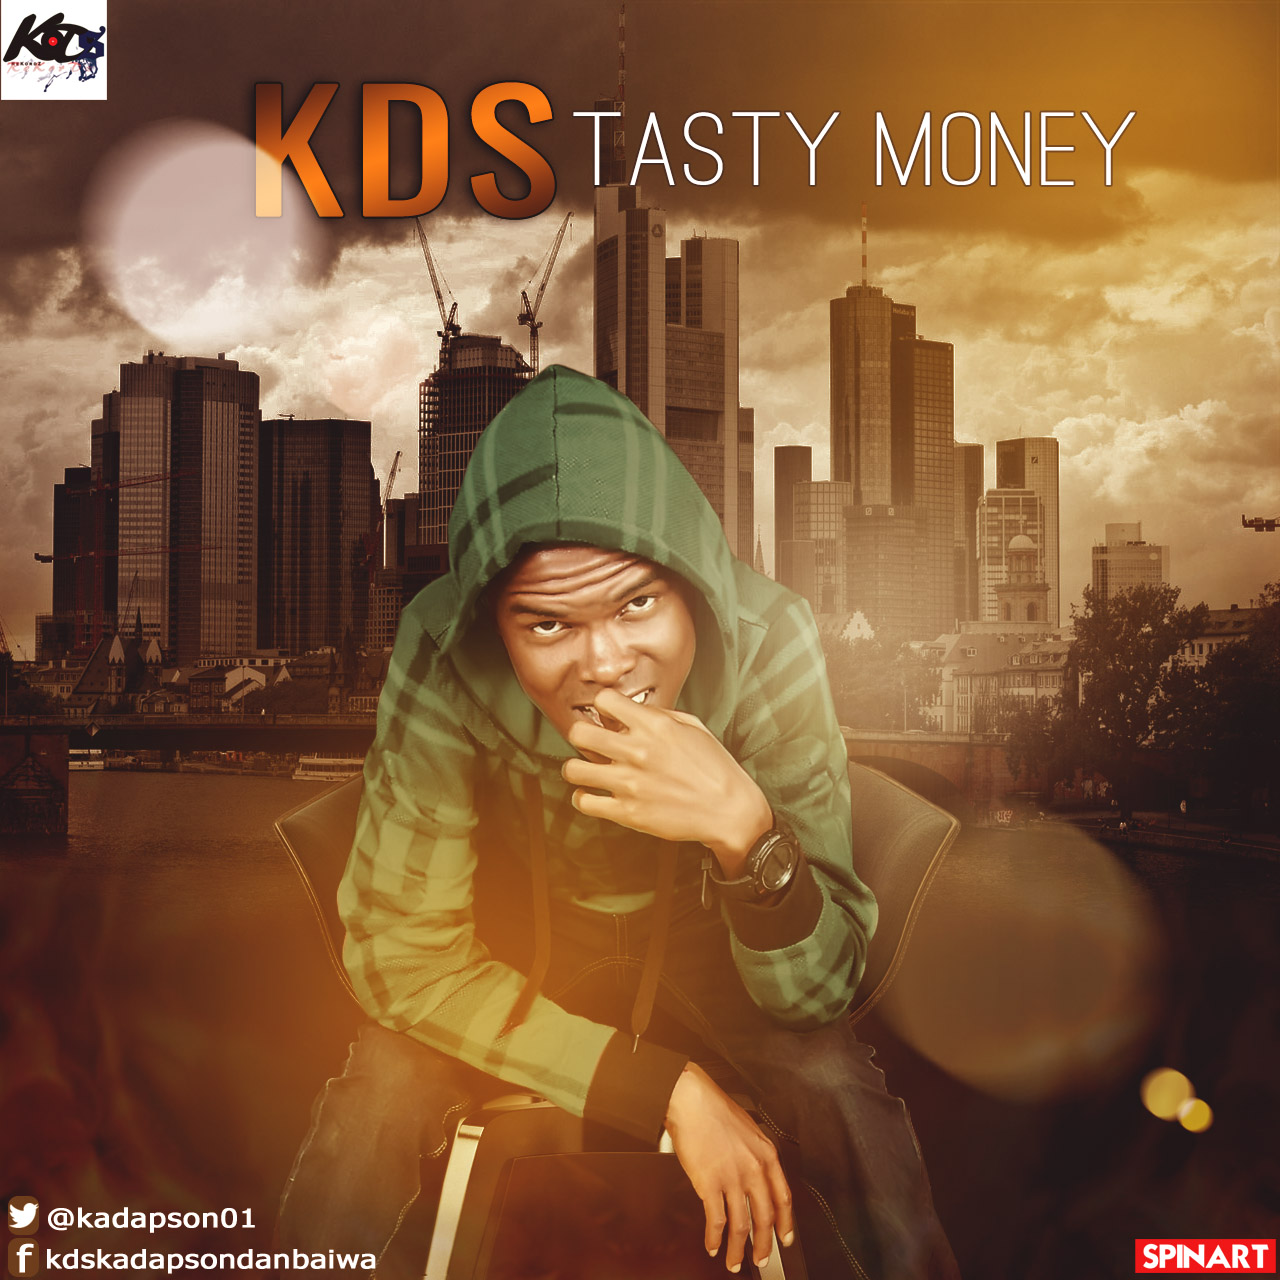 MUSIC: KDS_ TASTY MONEY.MP3